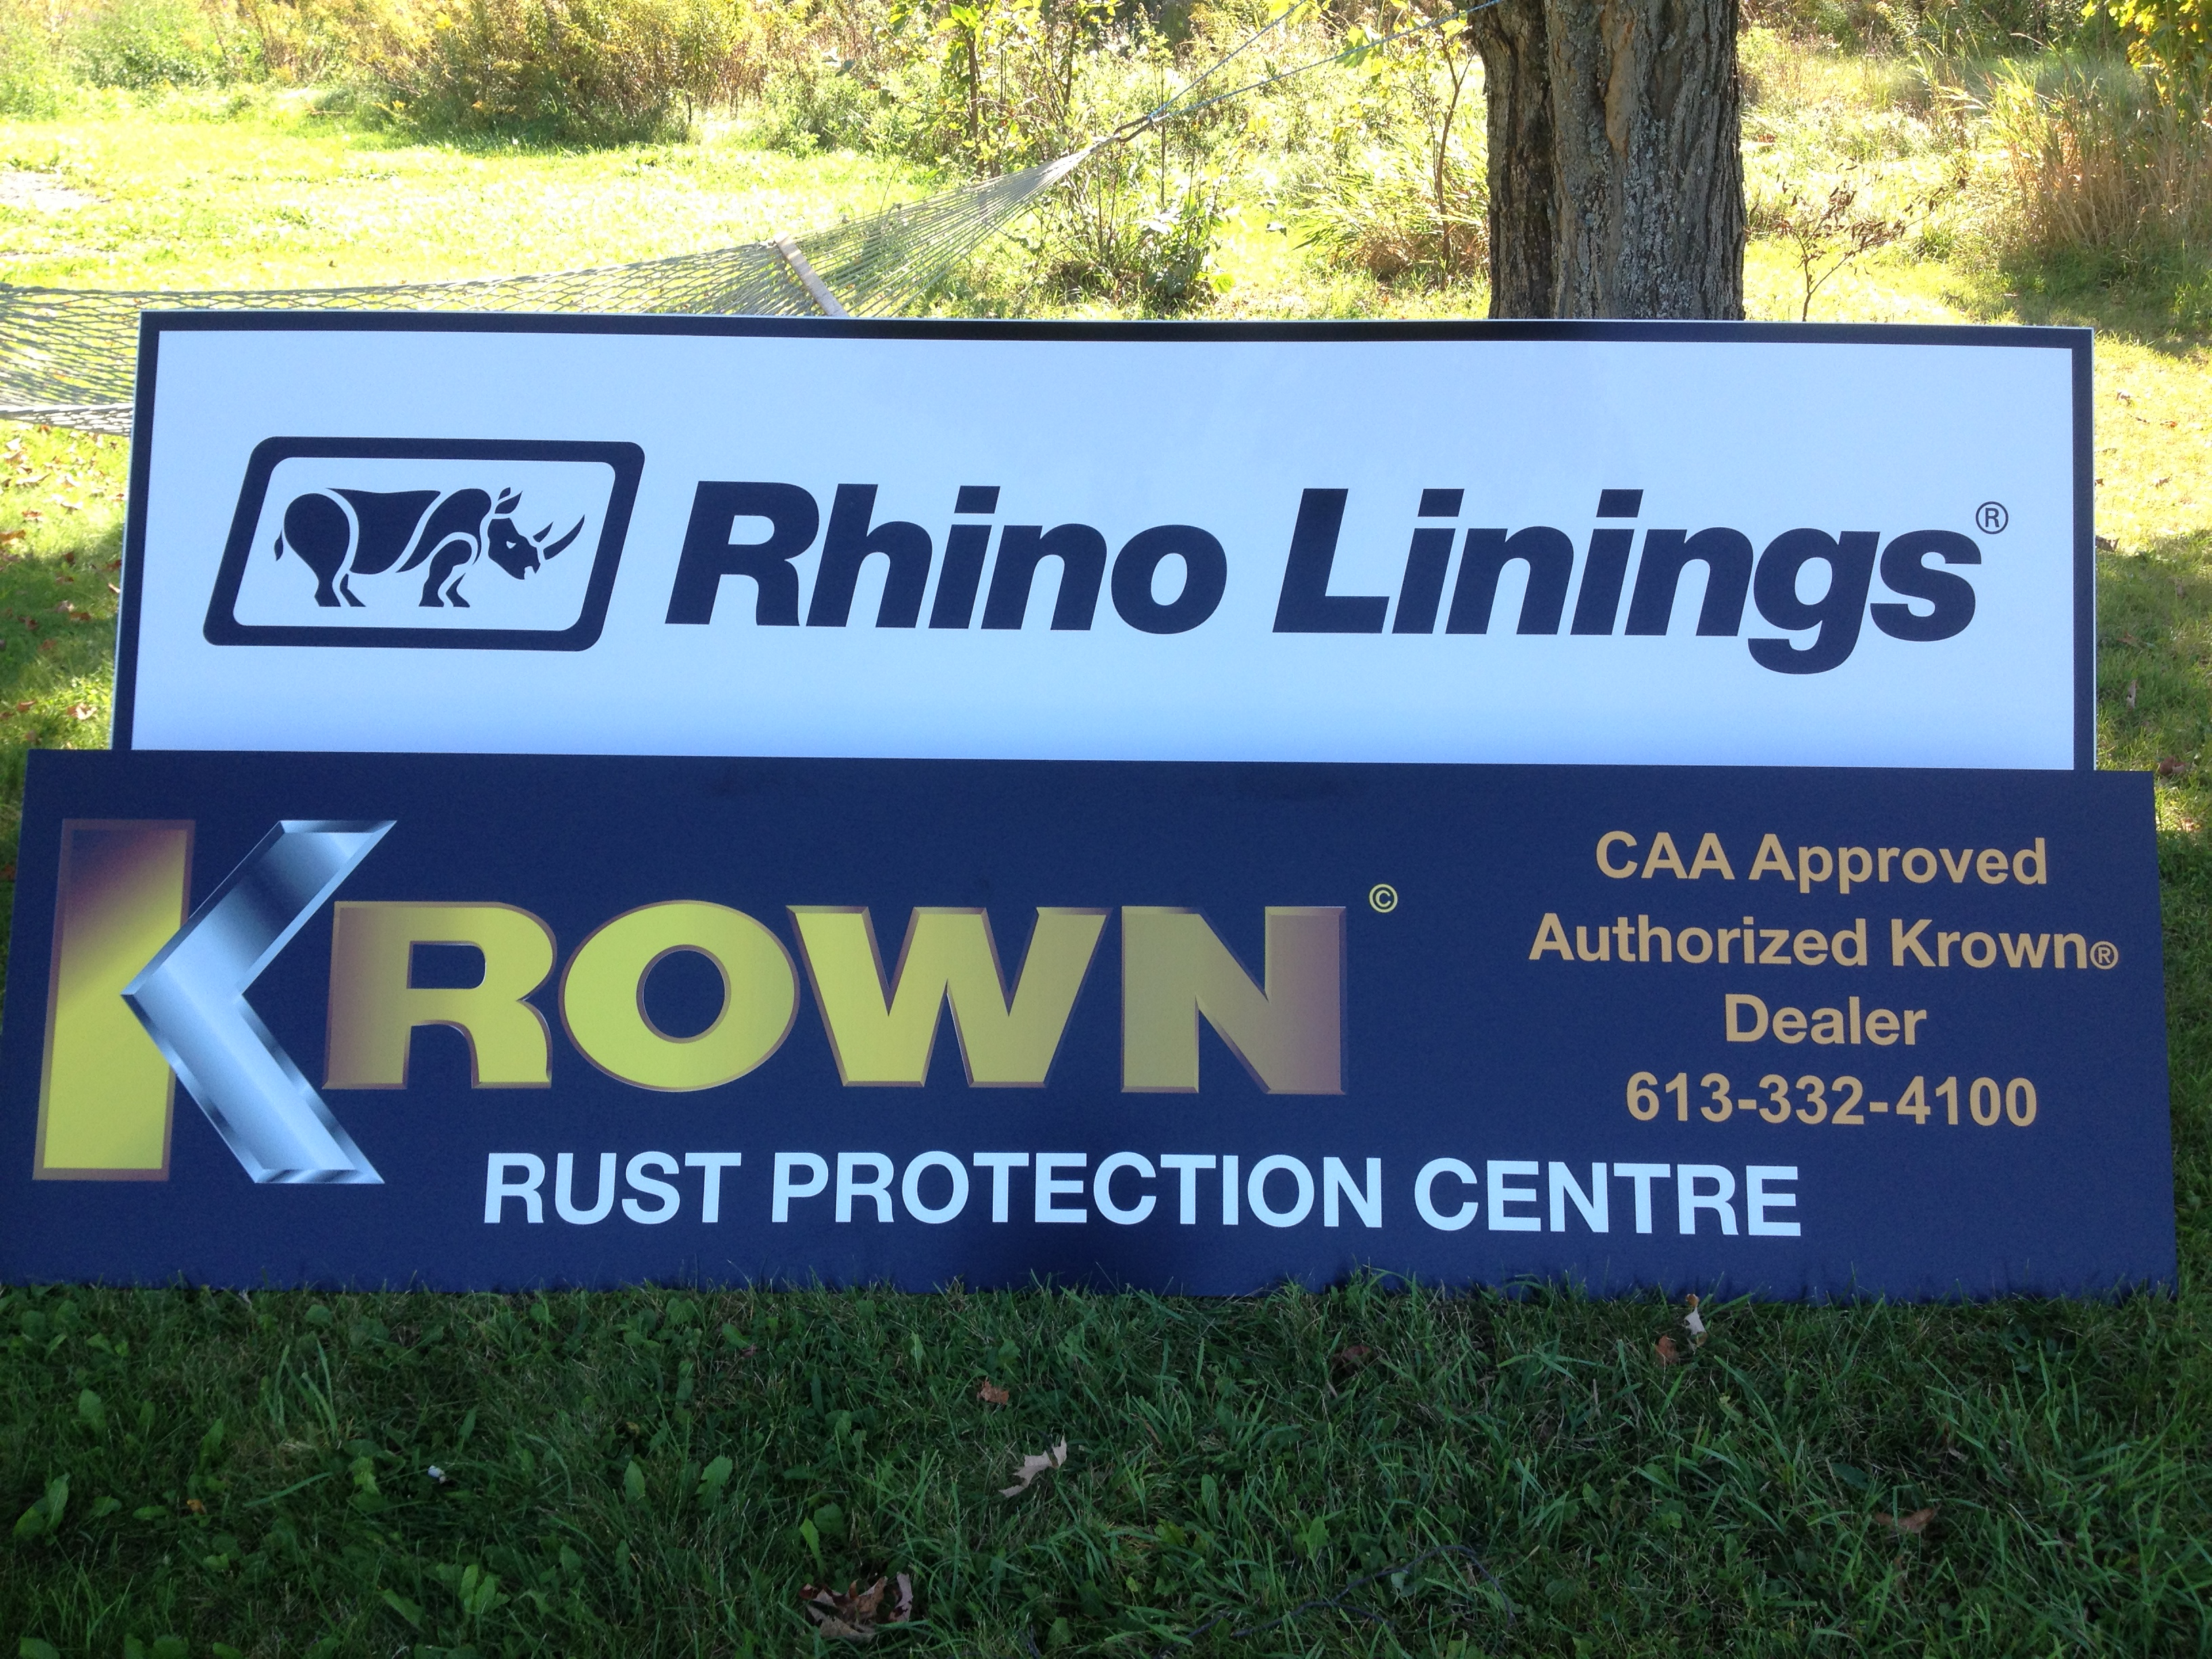 Crownline Rhino and Krown Signs.JPG